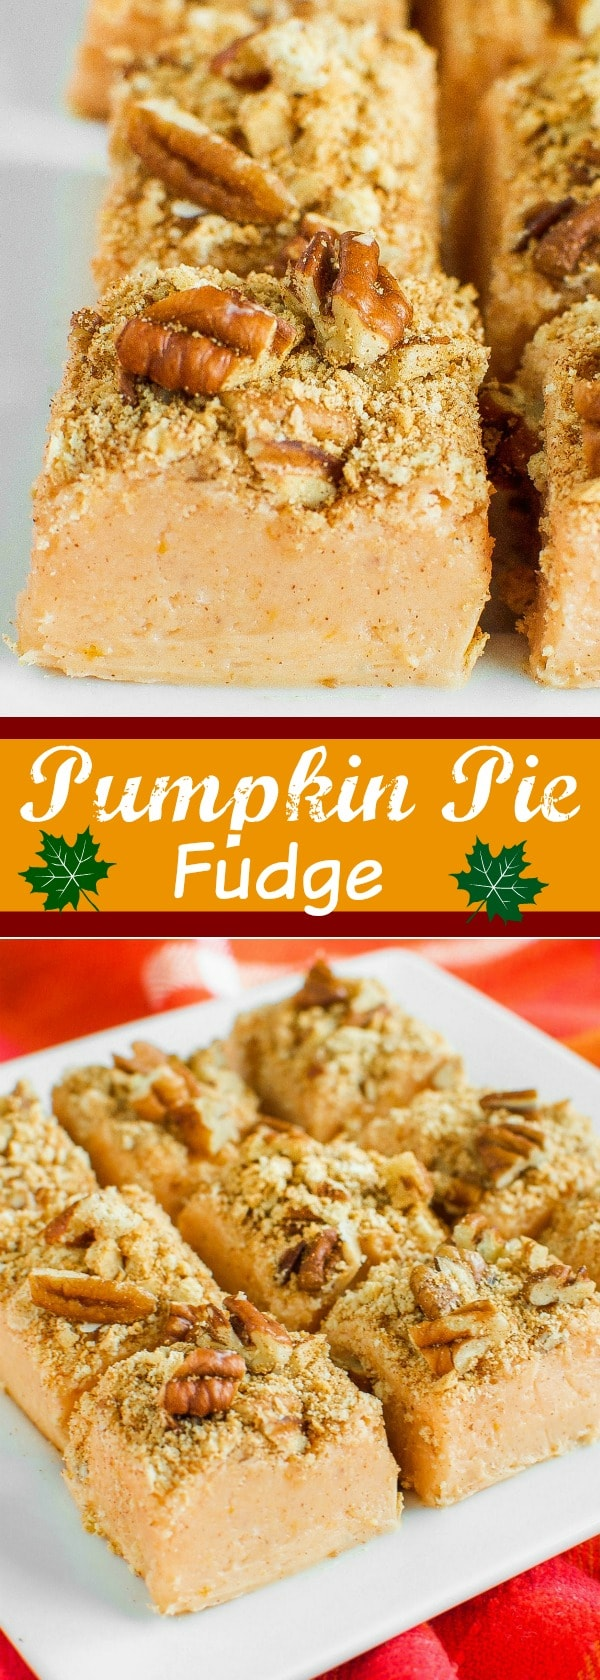 This Easy Pumpkin Pie Fudge with a crunchy, pumpkin spice topping, has all the festive flavors of pumpkin pie in an easy, no bake candy perfect for fall!